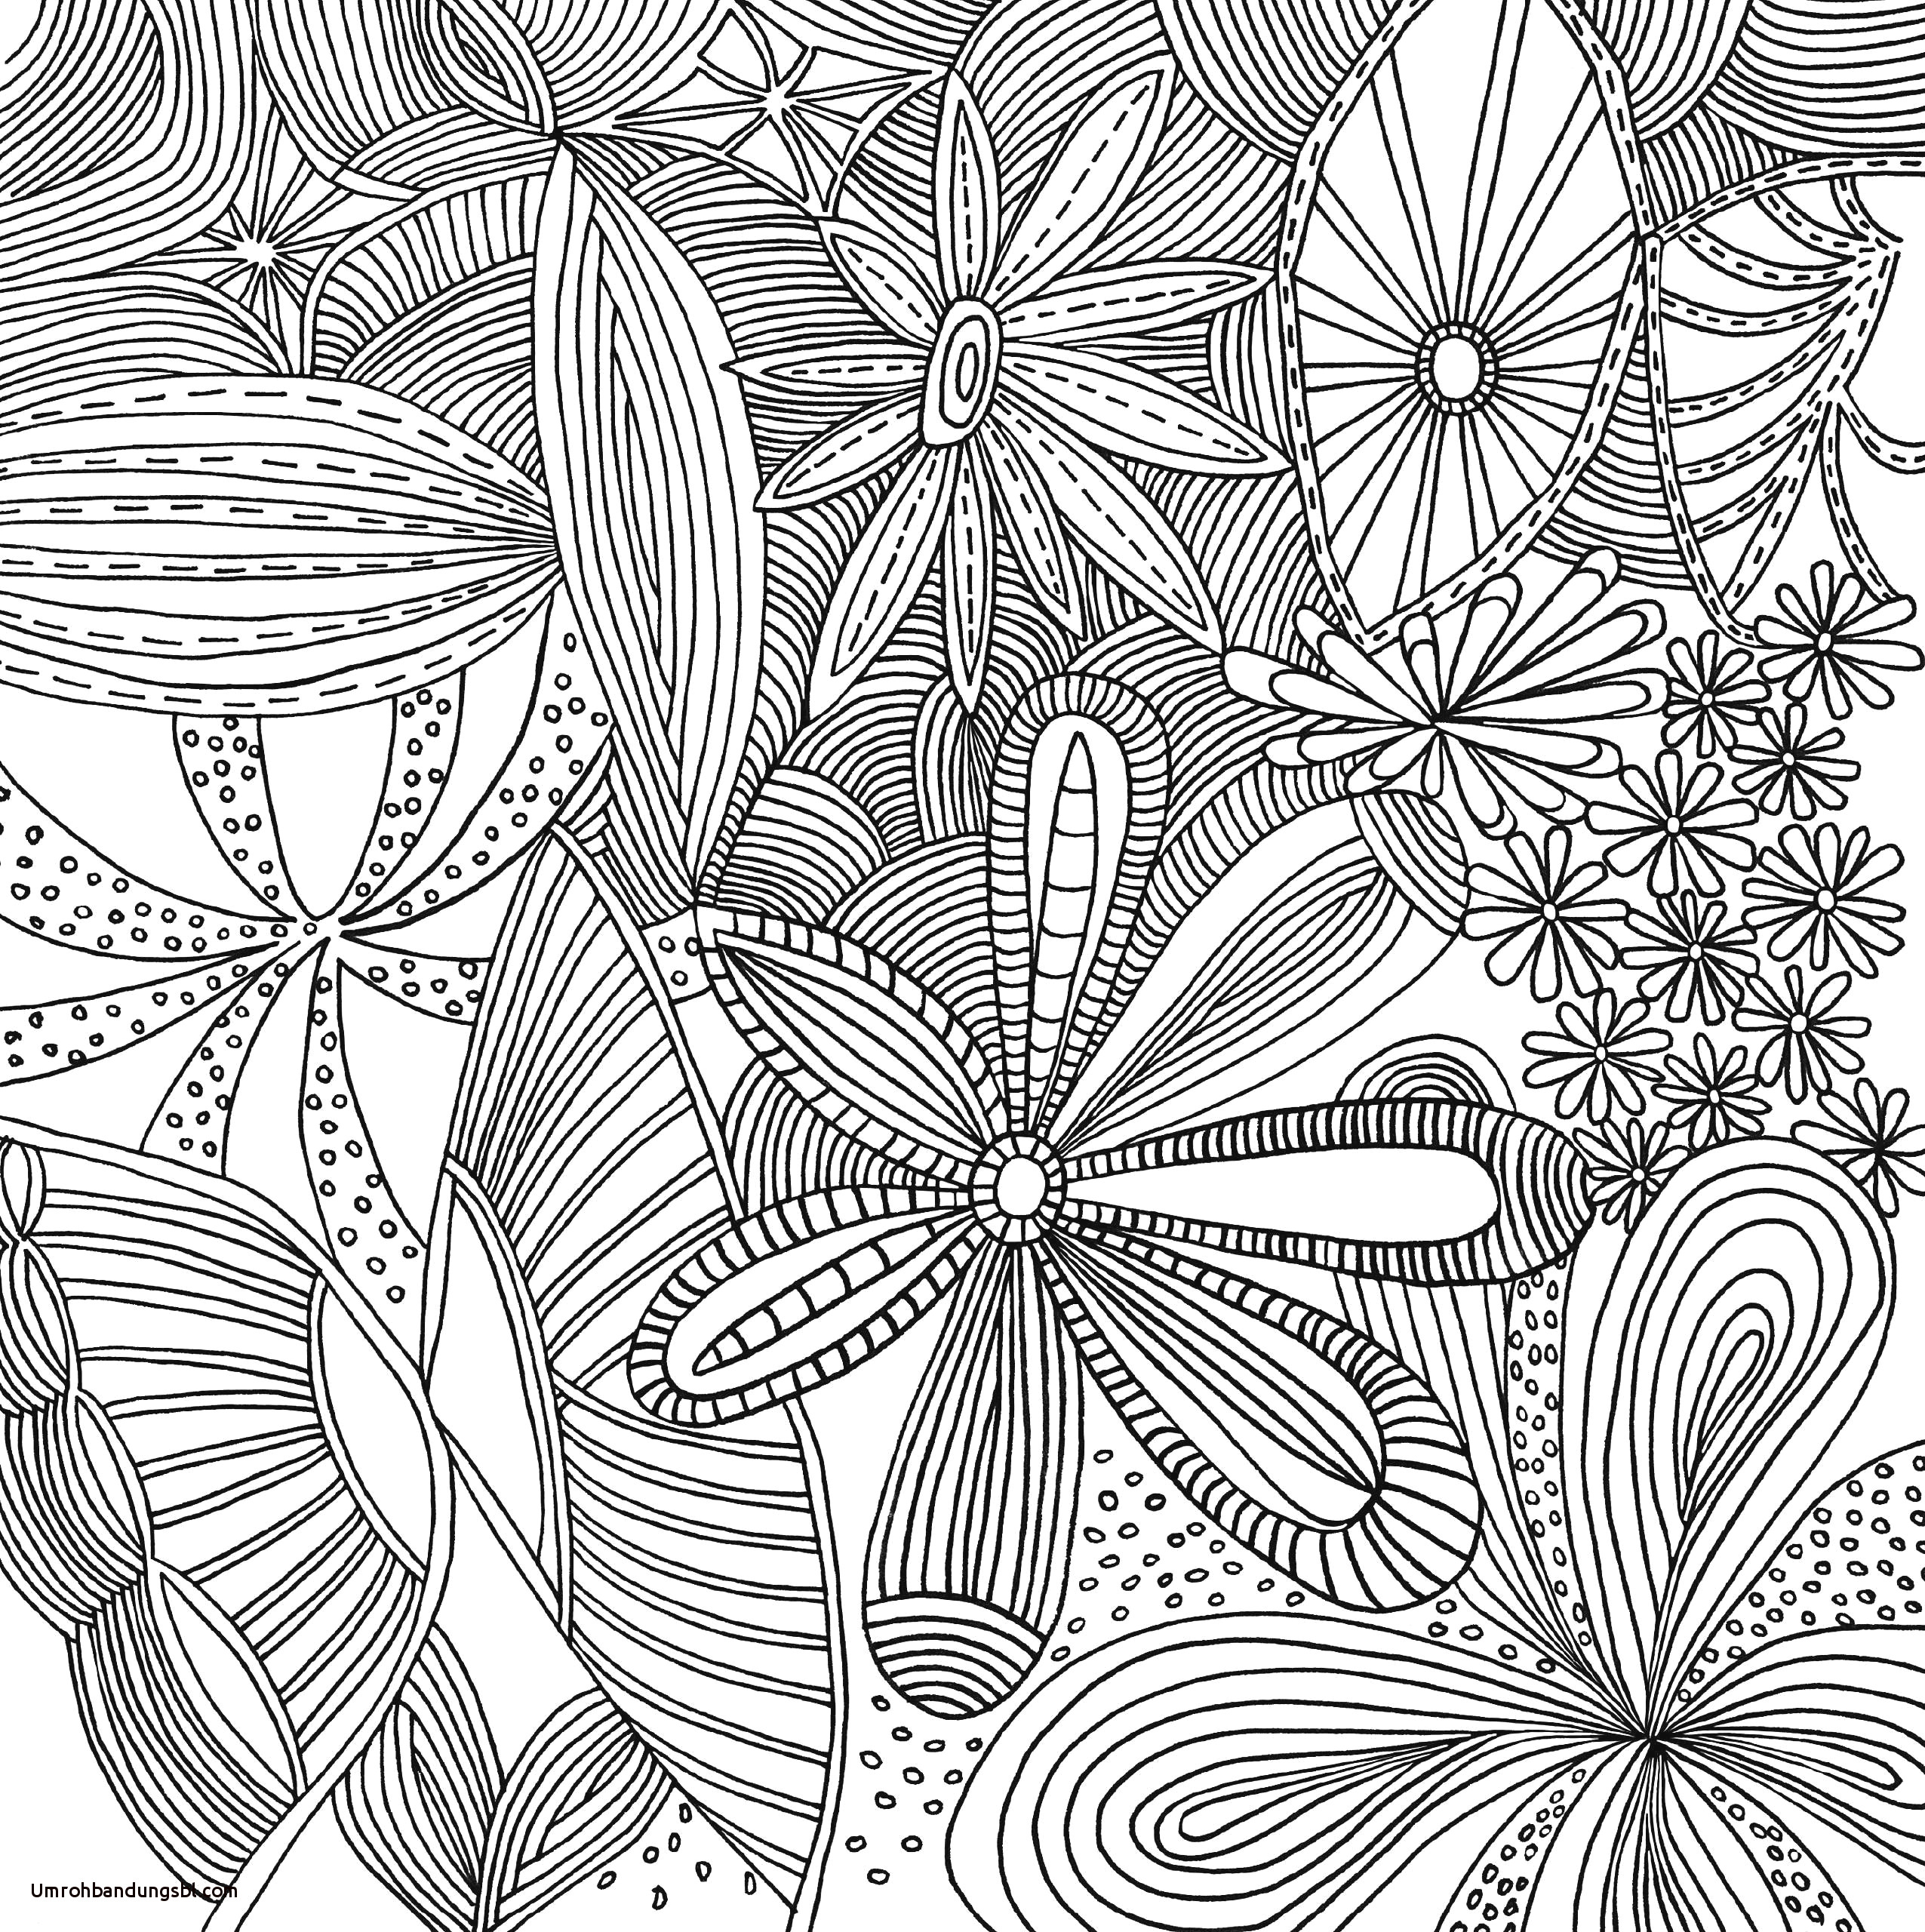 Ice Cream Coloring Pages  Download 6n - To print for your project